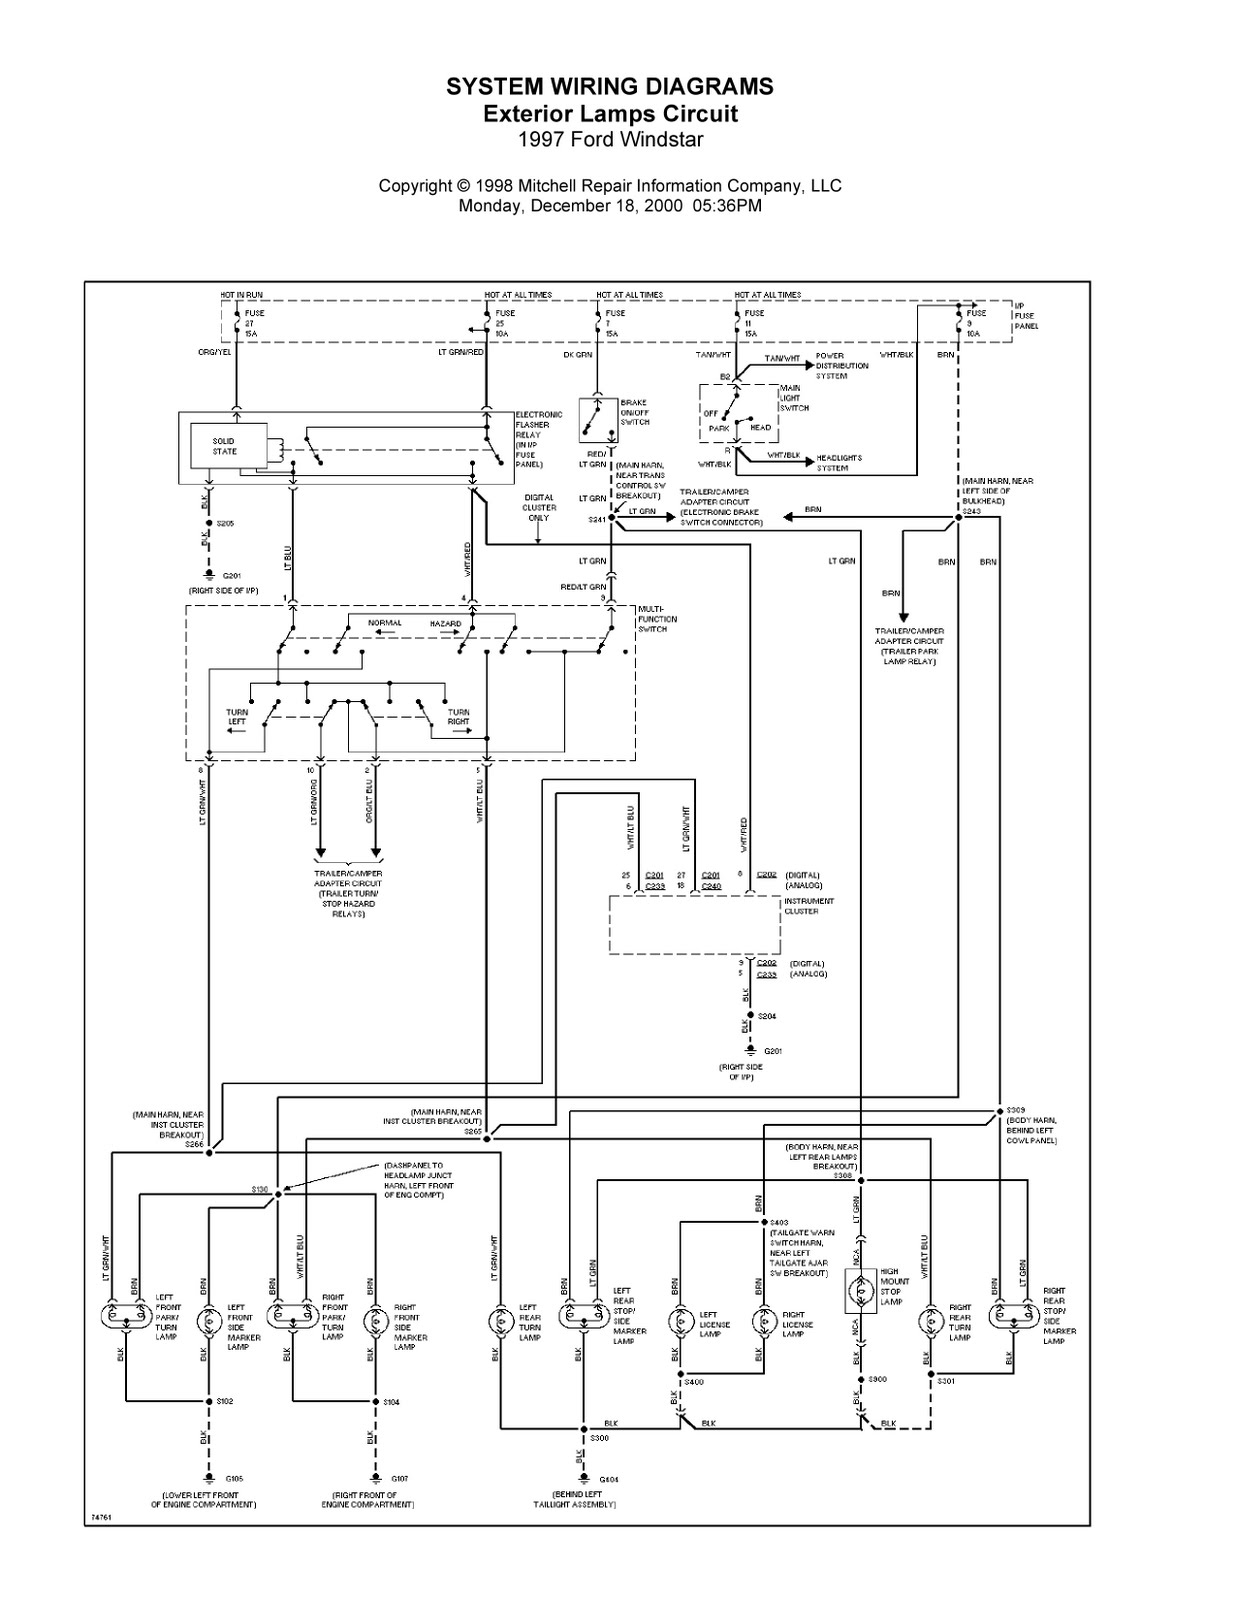 1997 ford windstar complete system wiring diagrams 2000 ford windstar wiring diagram 2001 ford windstar electrical [ 1236 x 1600 Pixel ]